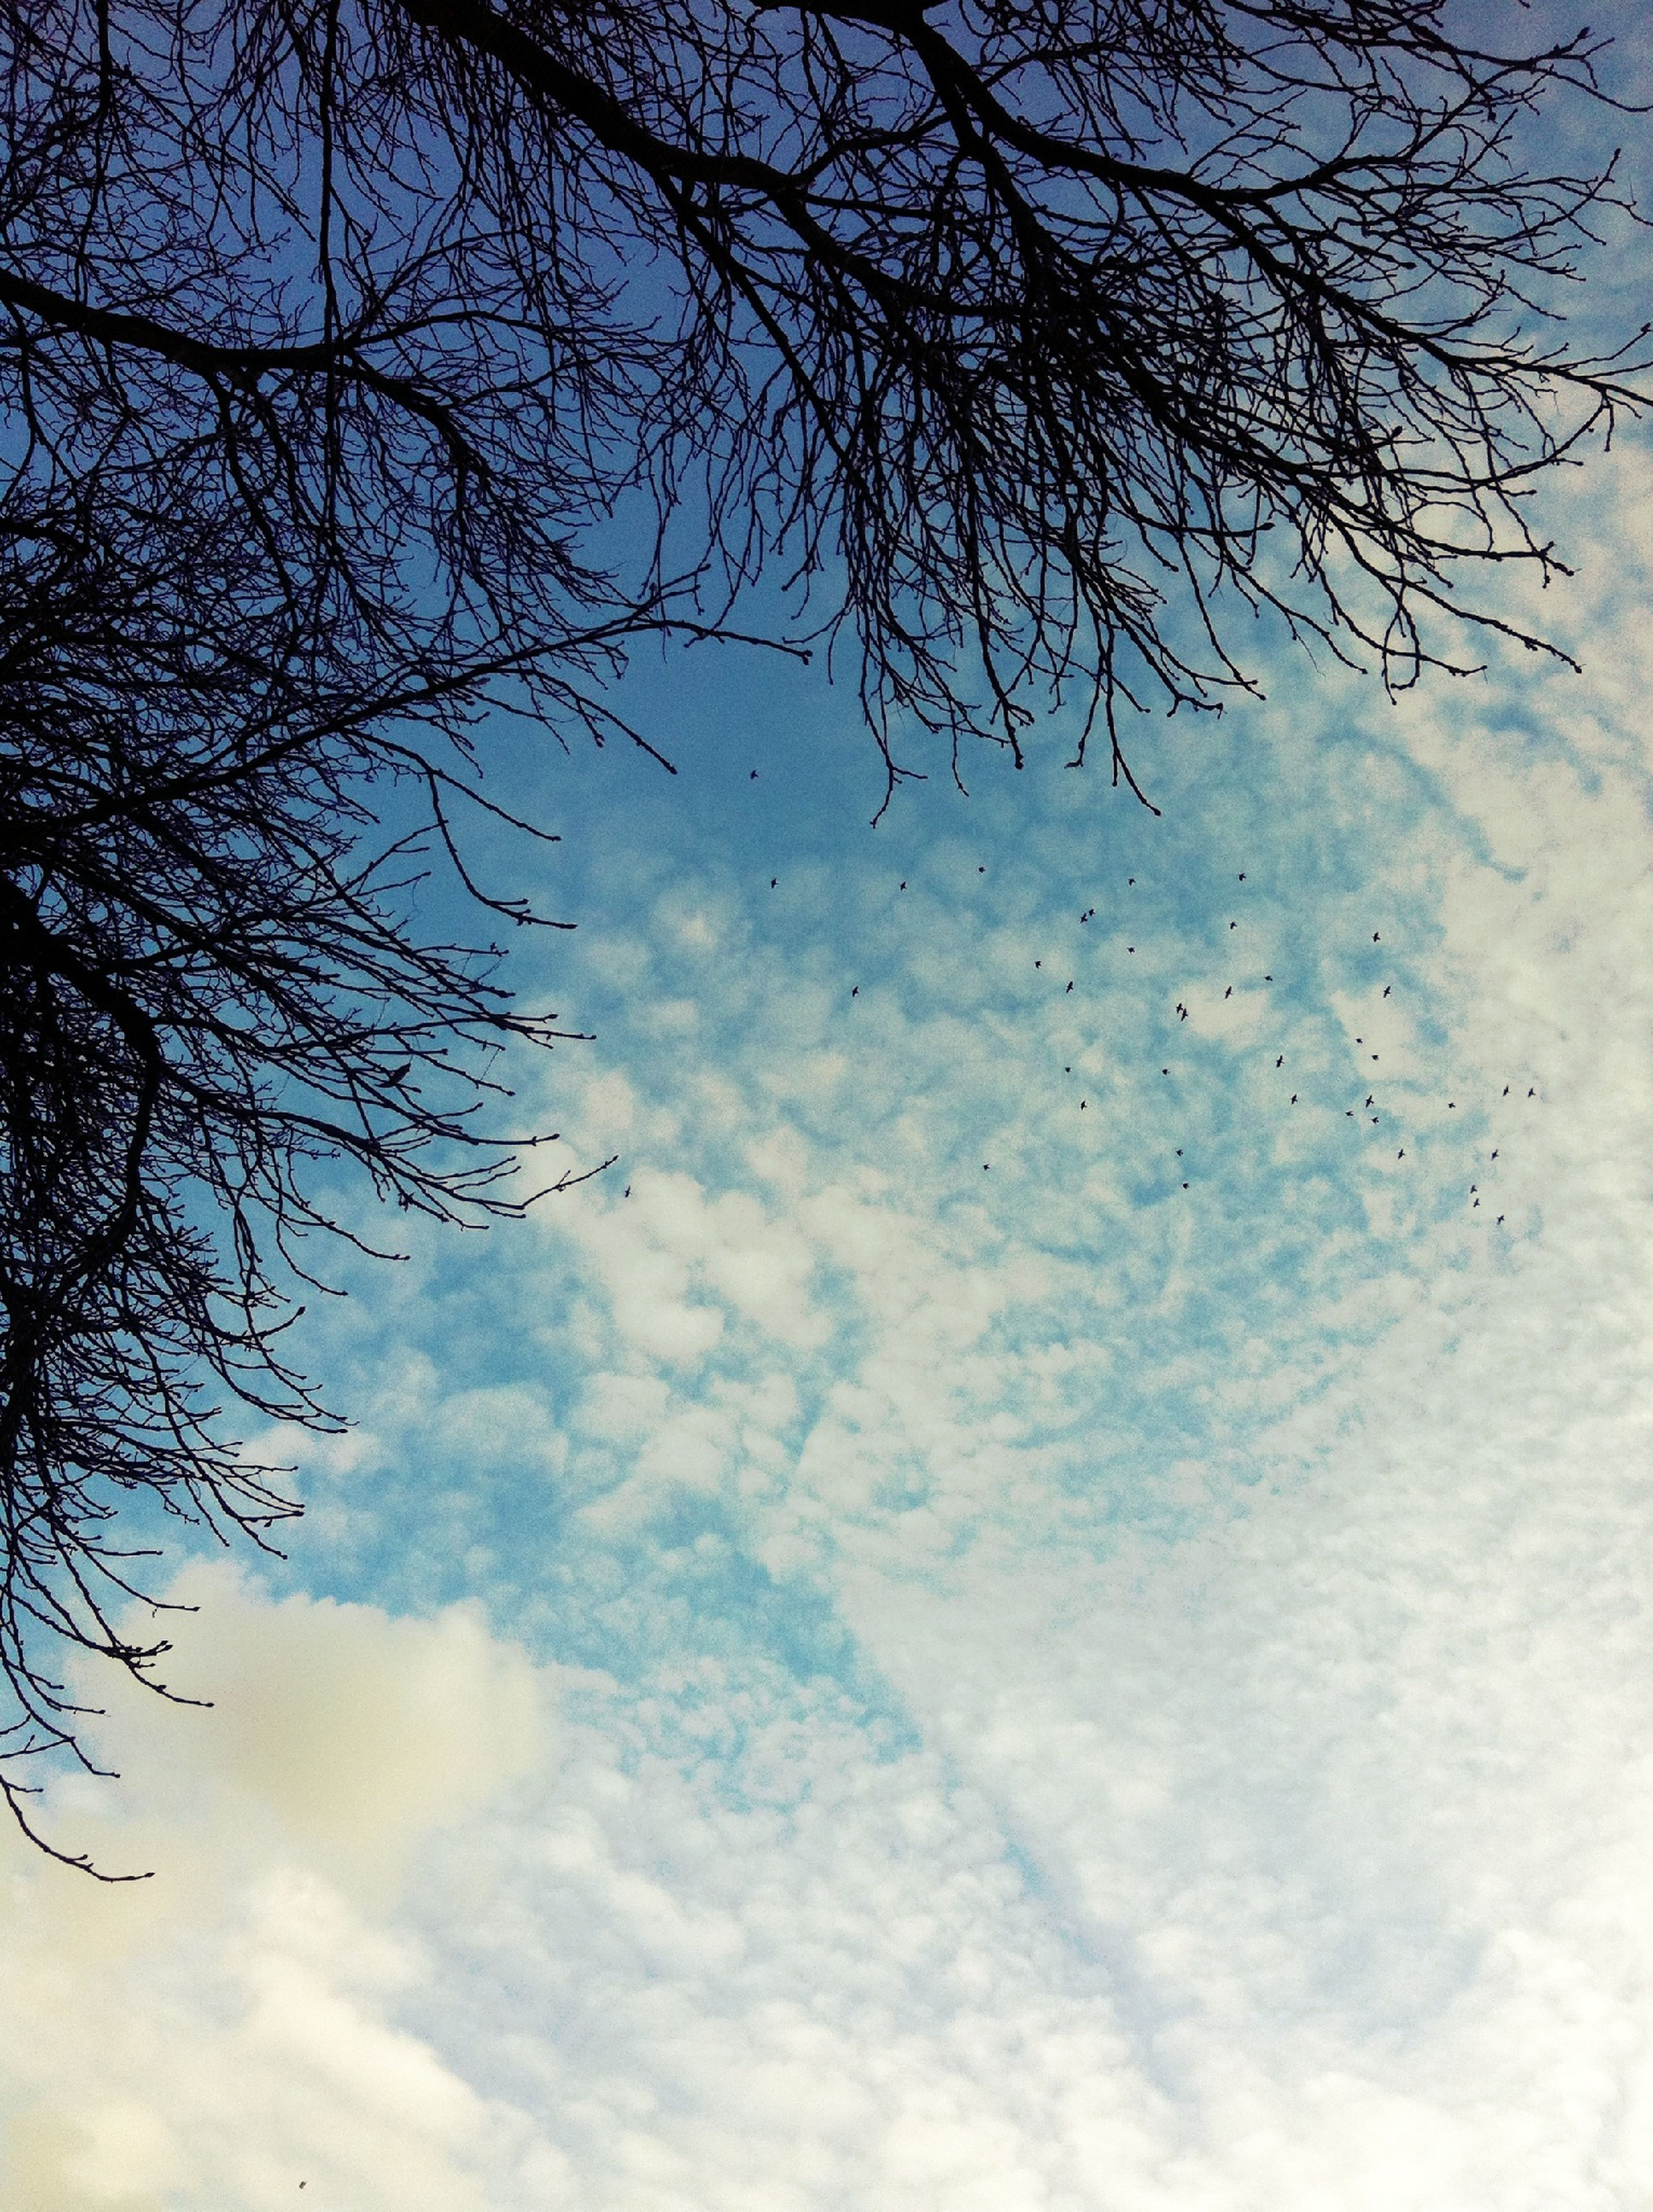 low angle view, sky, tree, cloud - sky, branch, bare tree, nature, tranquility, cloudy, beauty in nature, cloud, scenics, day, outdoors, no people, tranquil scene, growth, silhouette, backgrounds, weather